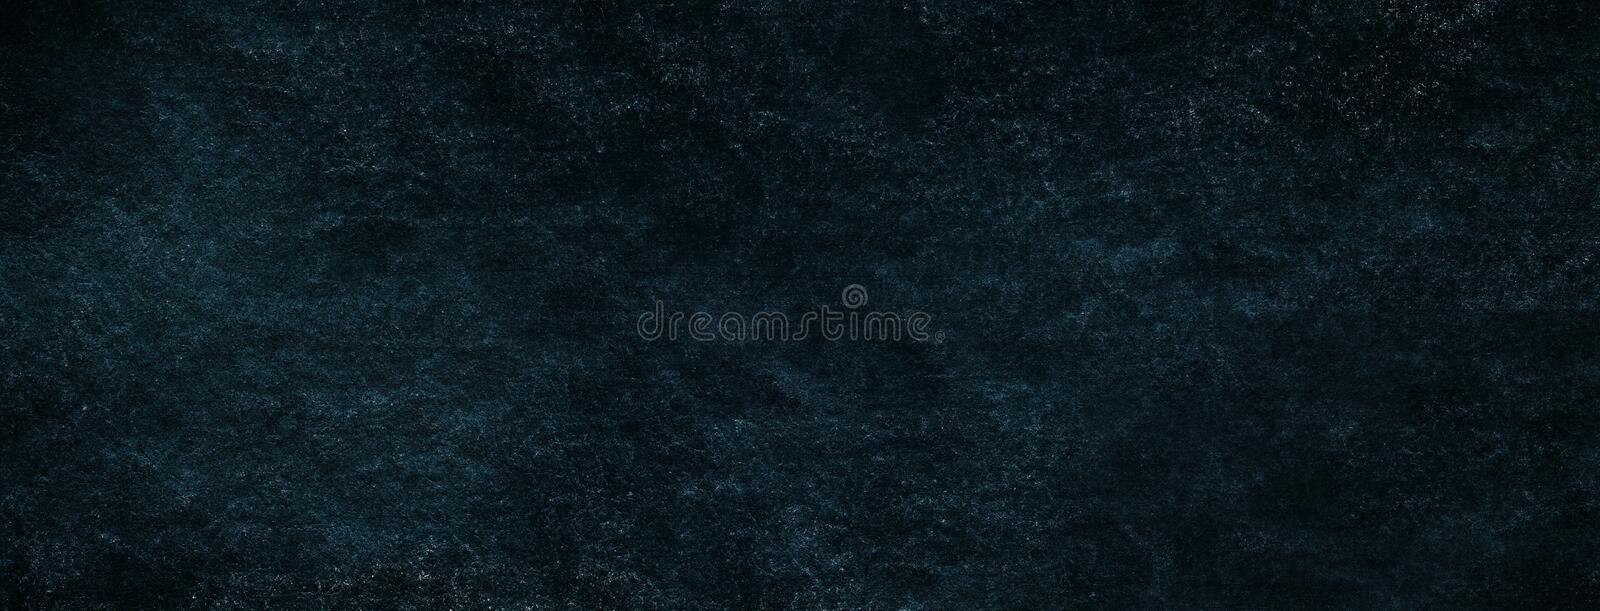 Blue azure dark abstract watercolor background for textures backgrounds and web banners design.  vector illustration